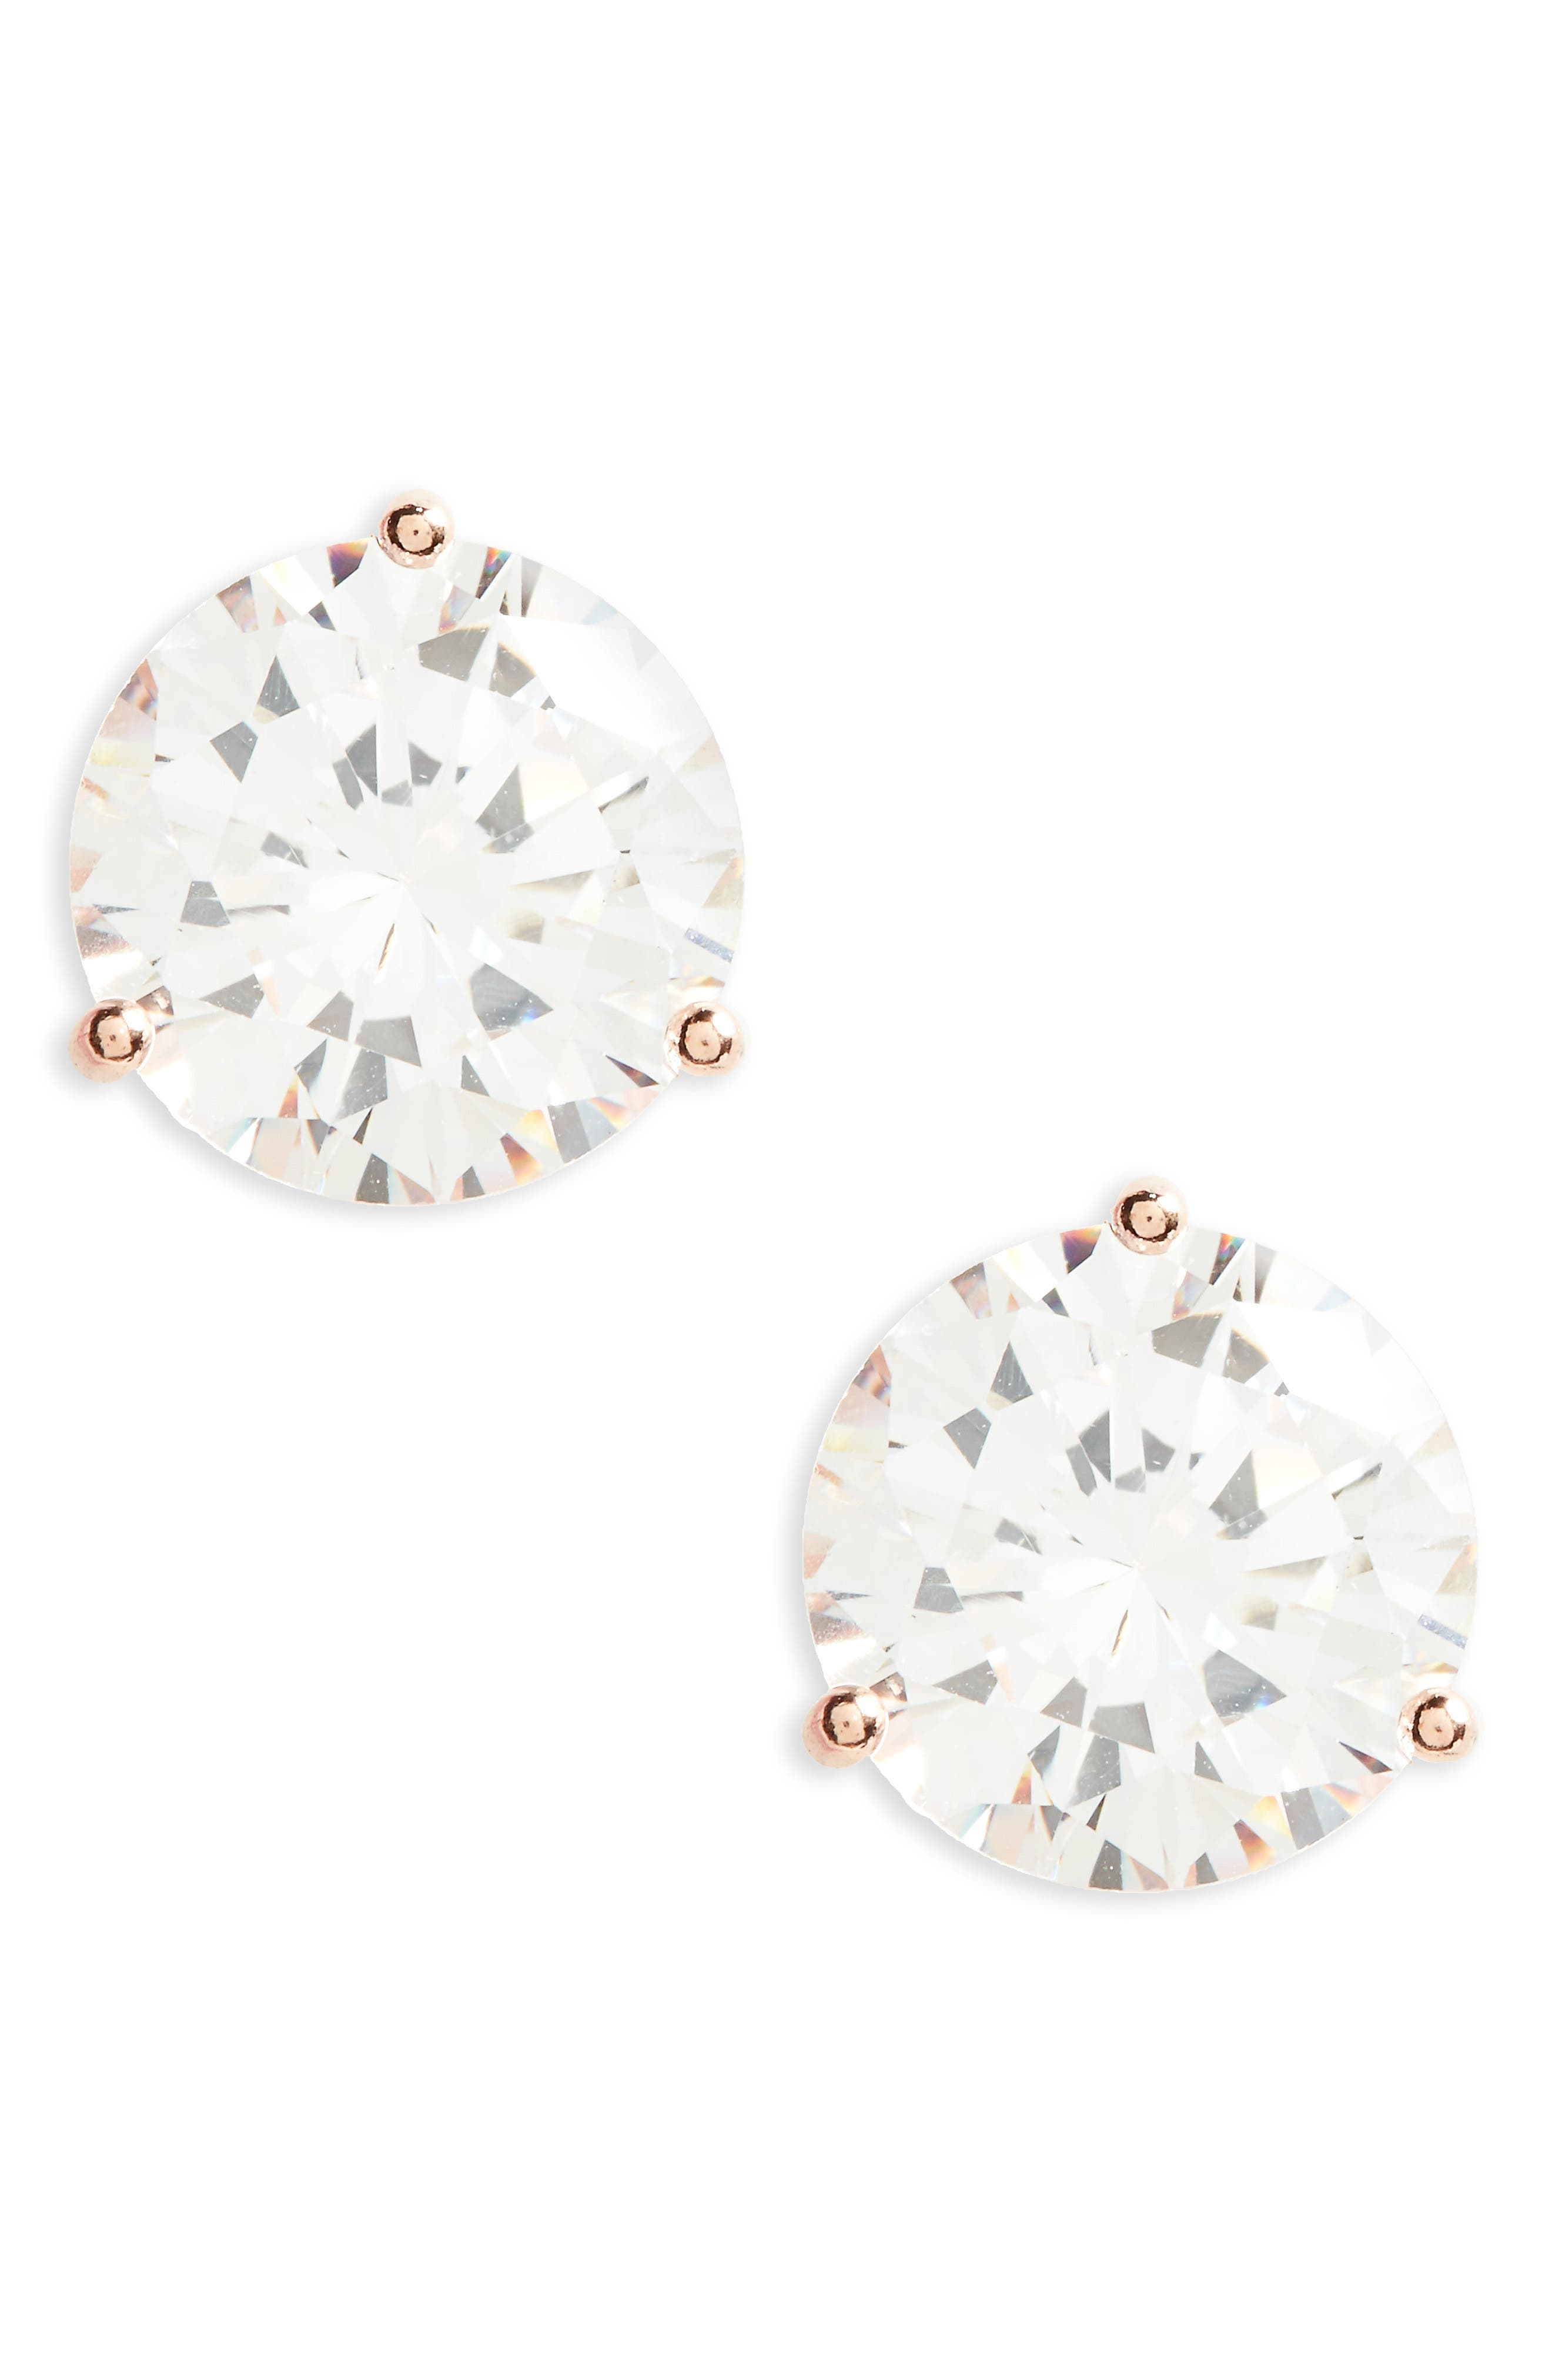 8ct tw Cubic Zirconia Stud Earrings,                             Main thumbnail 1, color,                             Clear- Rose Gold